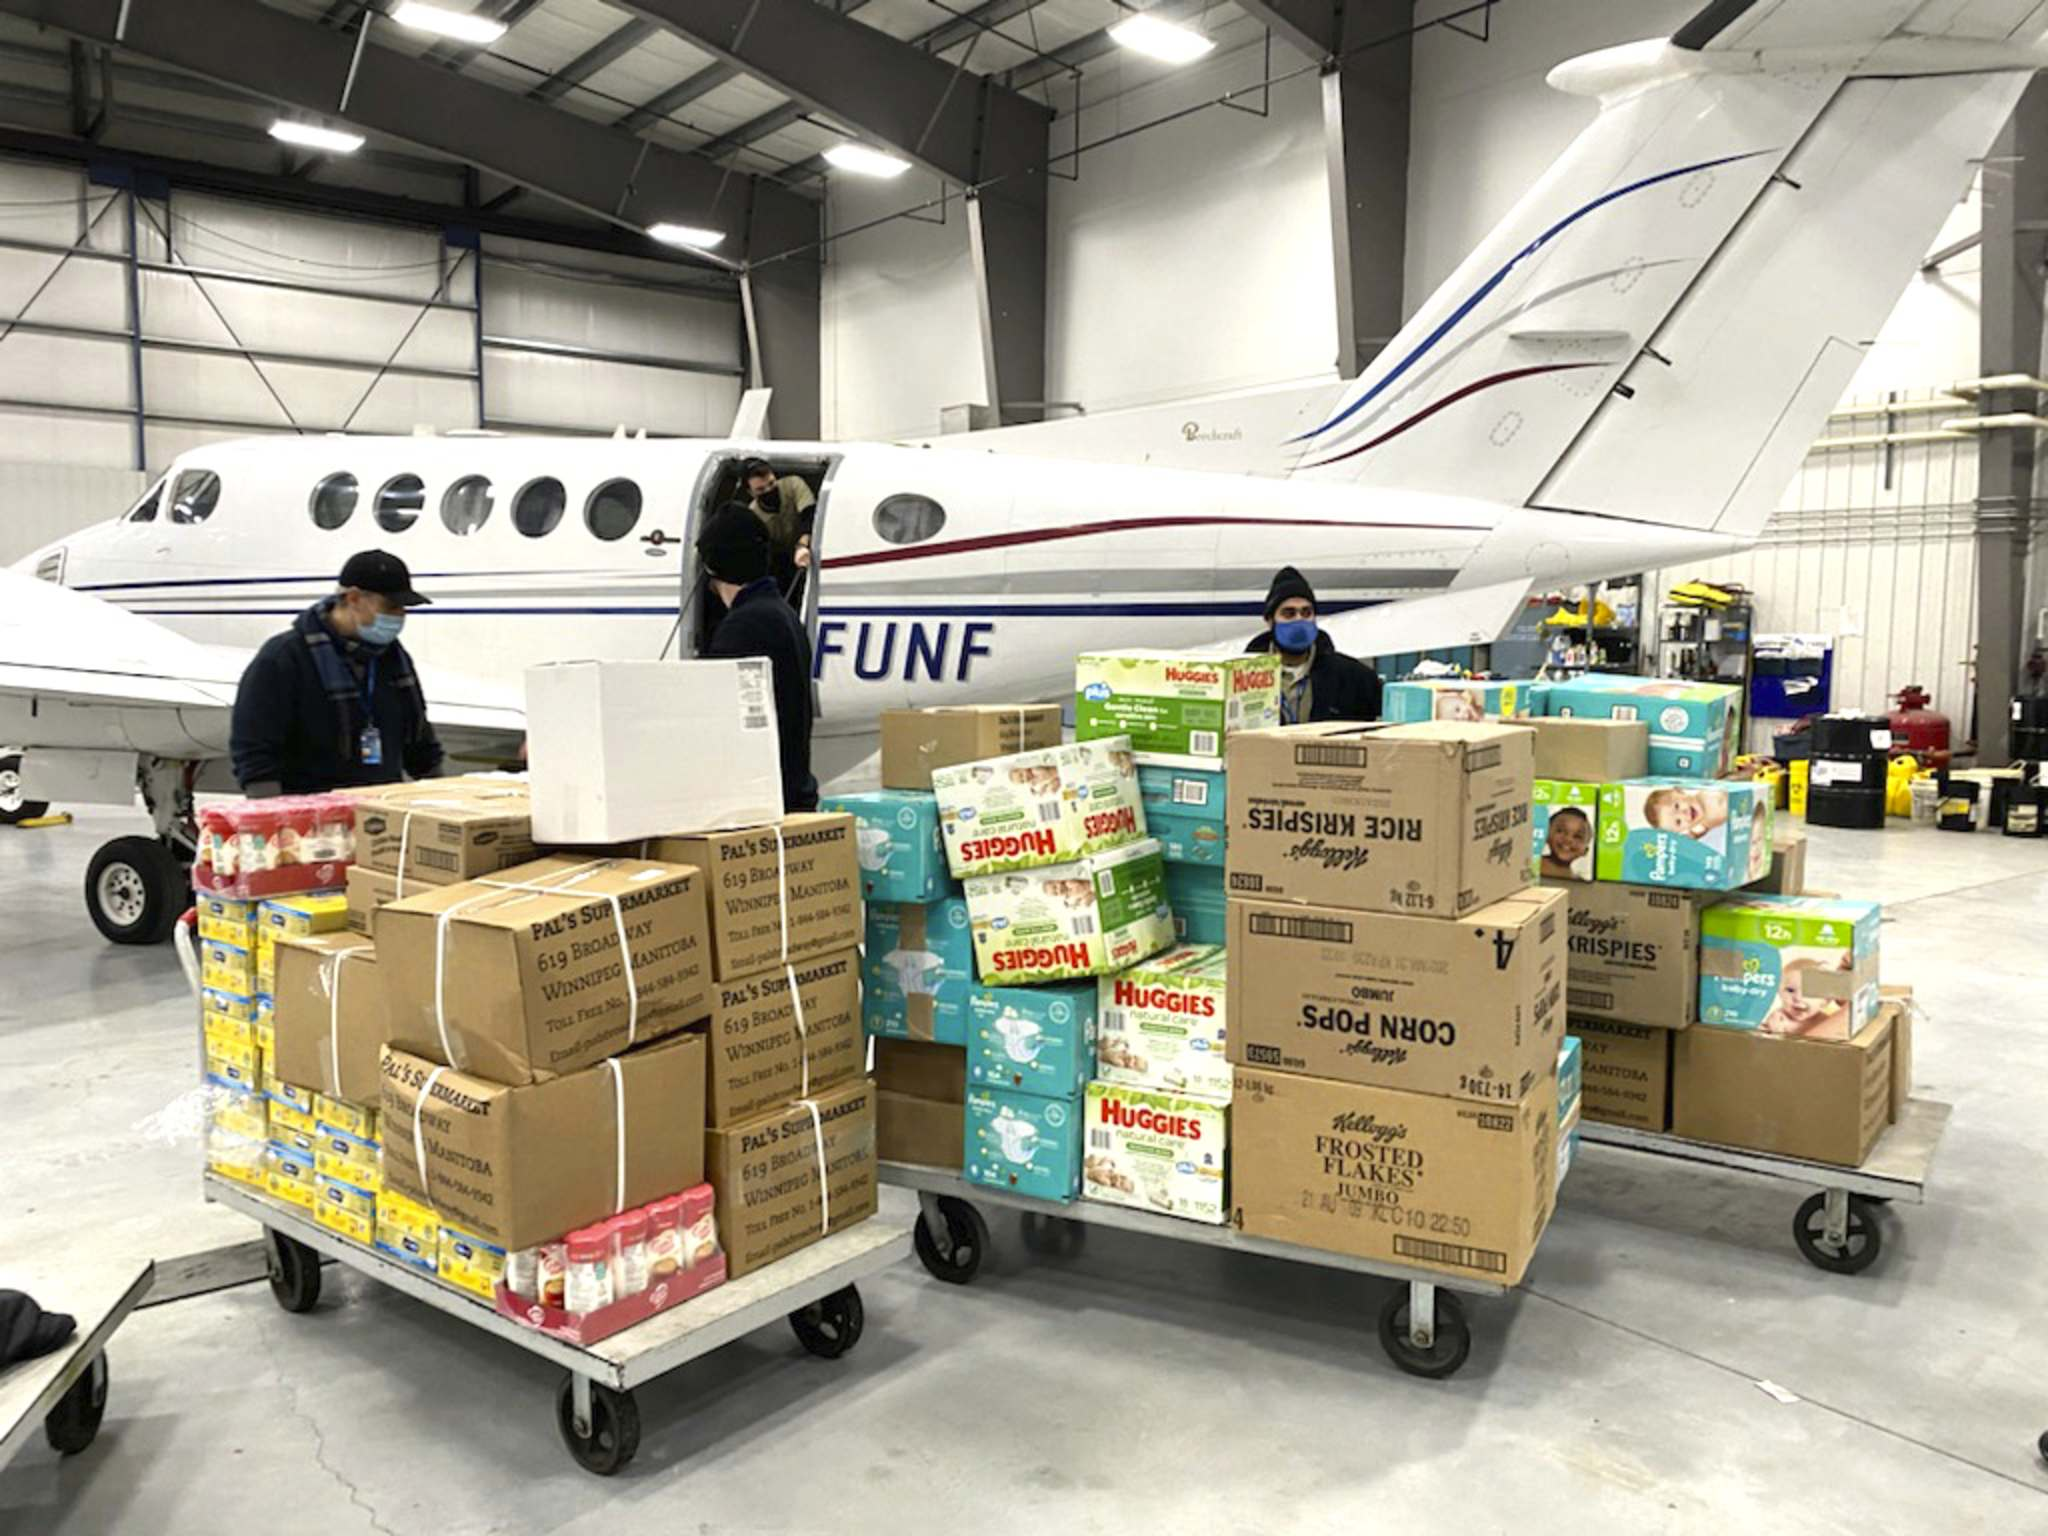 Gifts are seen being loaded up for northern children as part of an ongoing toy drive. (Submitted)</p></p>